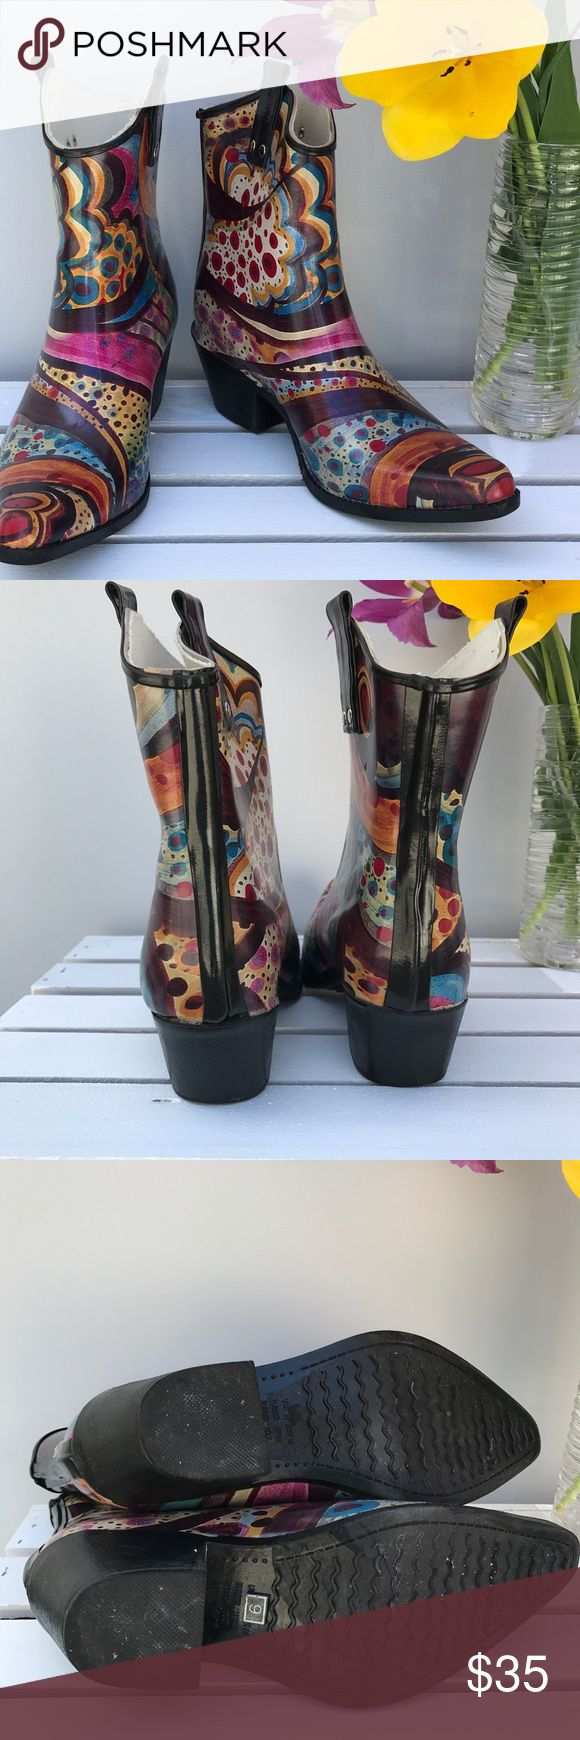 ☔️ Nomad cowboy rain boots ☔️ April showers bring you adorable Nomad multi-colored rubber rainboots with the brand's trademark cowboy styling. This is a short boot, size 9. Excellent used condition, very comfy. Worn very little as evidenced by the detachable liners. The style may be called Yippy Monet. Perfect description! Nomad Shoes Winter & Rain Boots